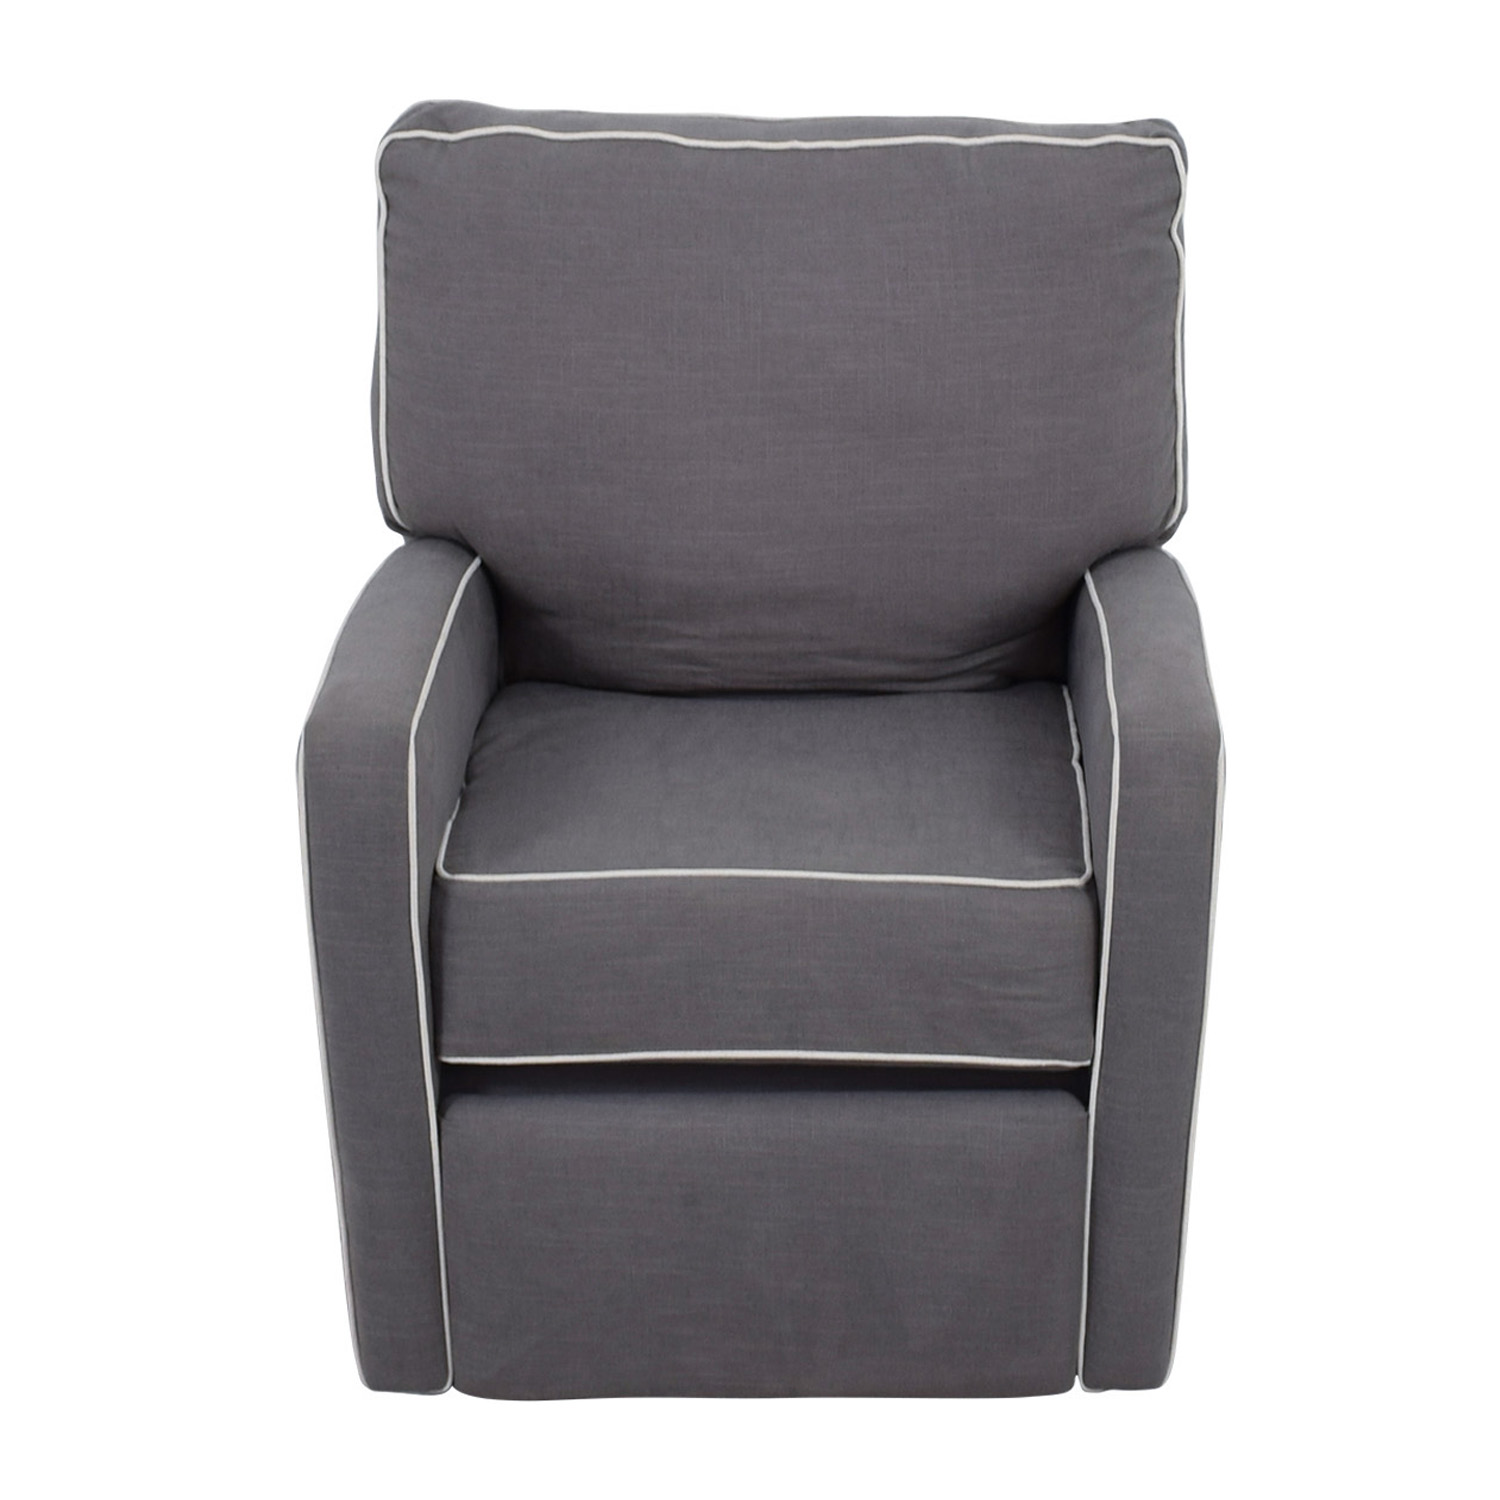 Grey with White Trim Rocking Chair coupon